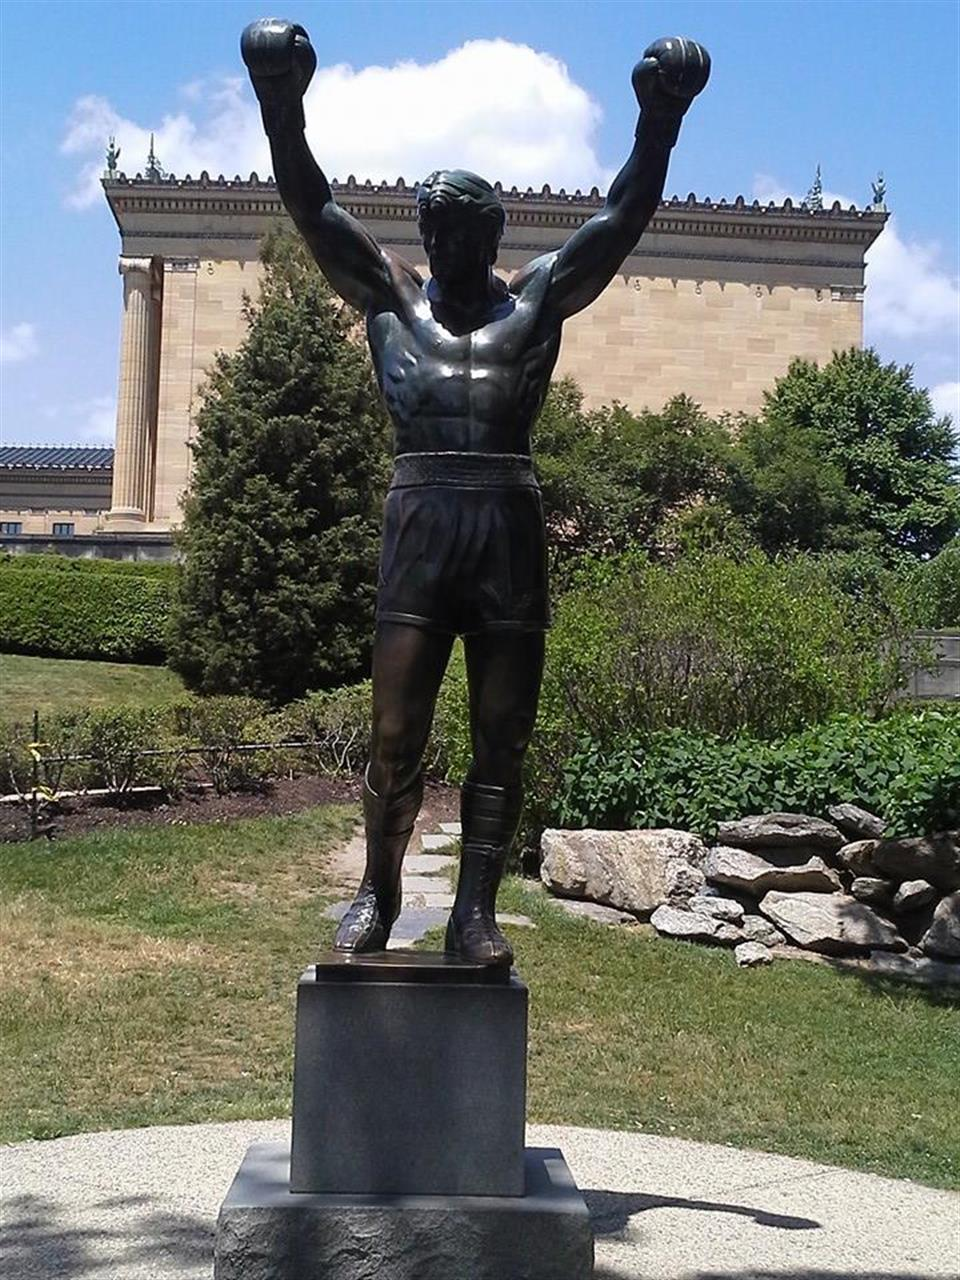 Popular Attraction Rocky Statue at the Philadelphia Art Museum Climb the Museum steps like a champ! 2600 Benjamin Franklin Pkwy Philadelphia, PA 19130